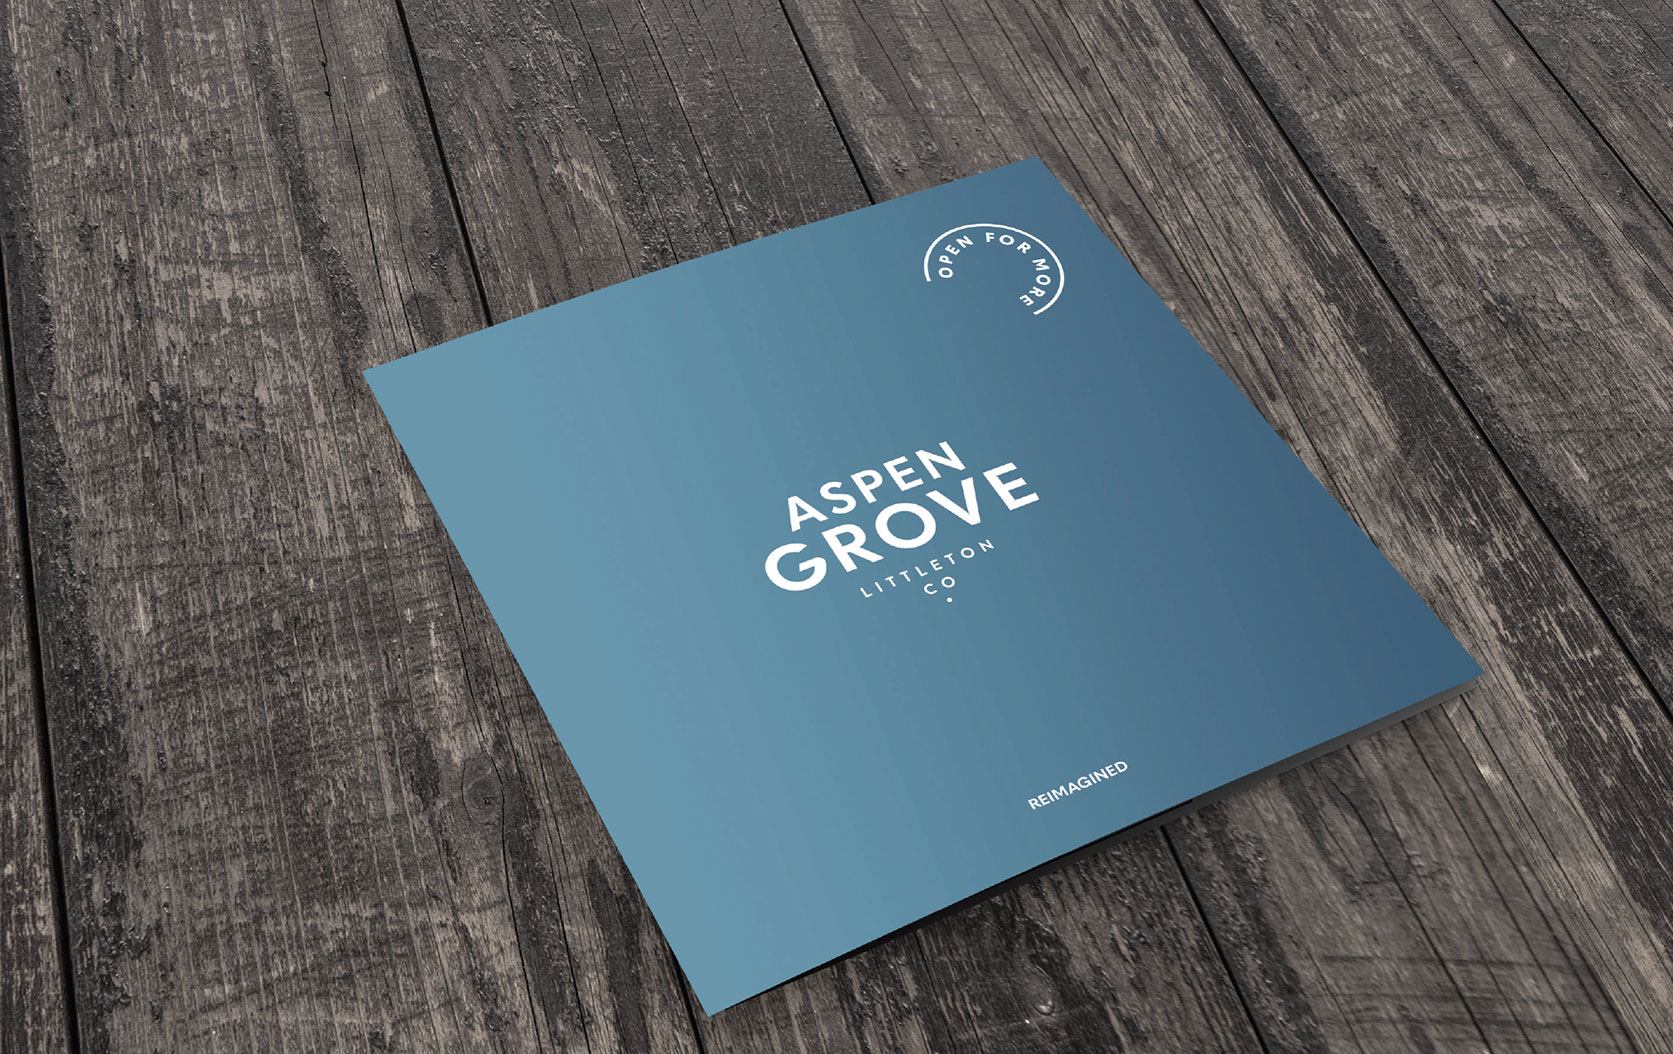 aspen-grove-leasing collateral-uncomn-projects